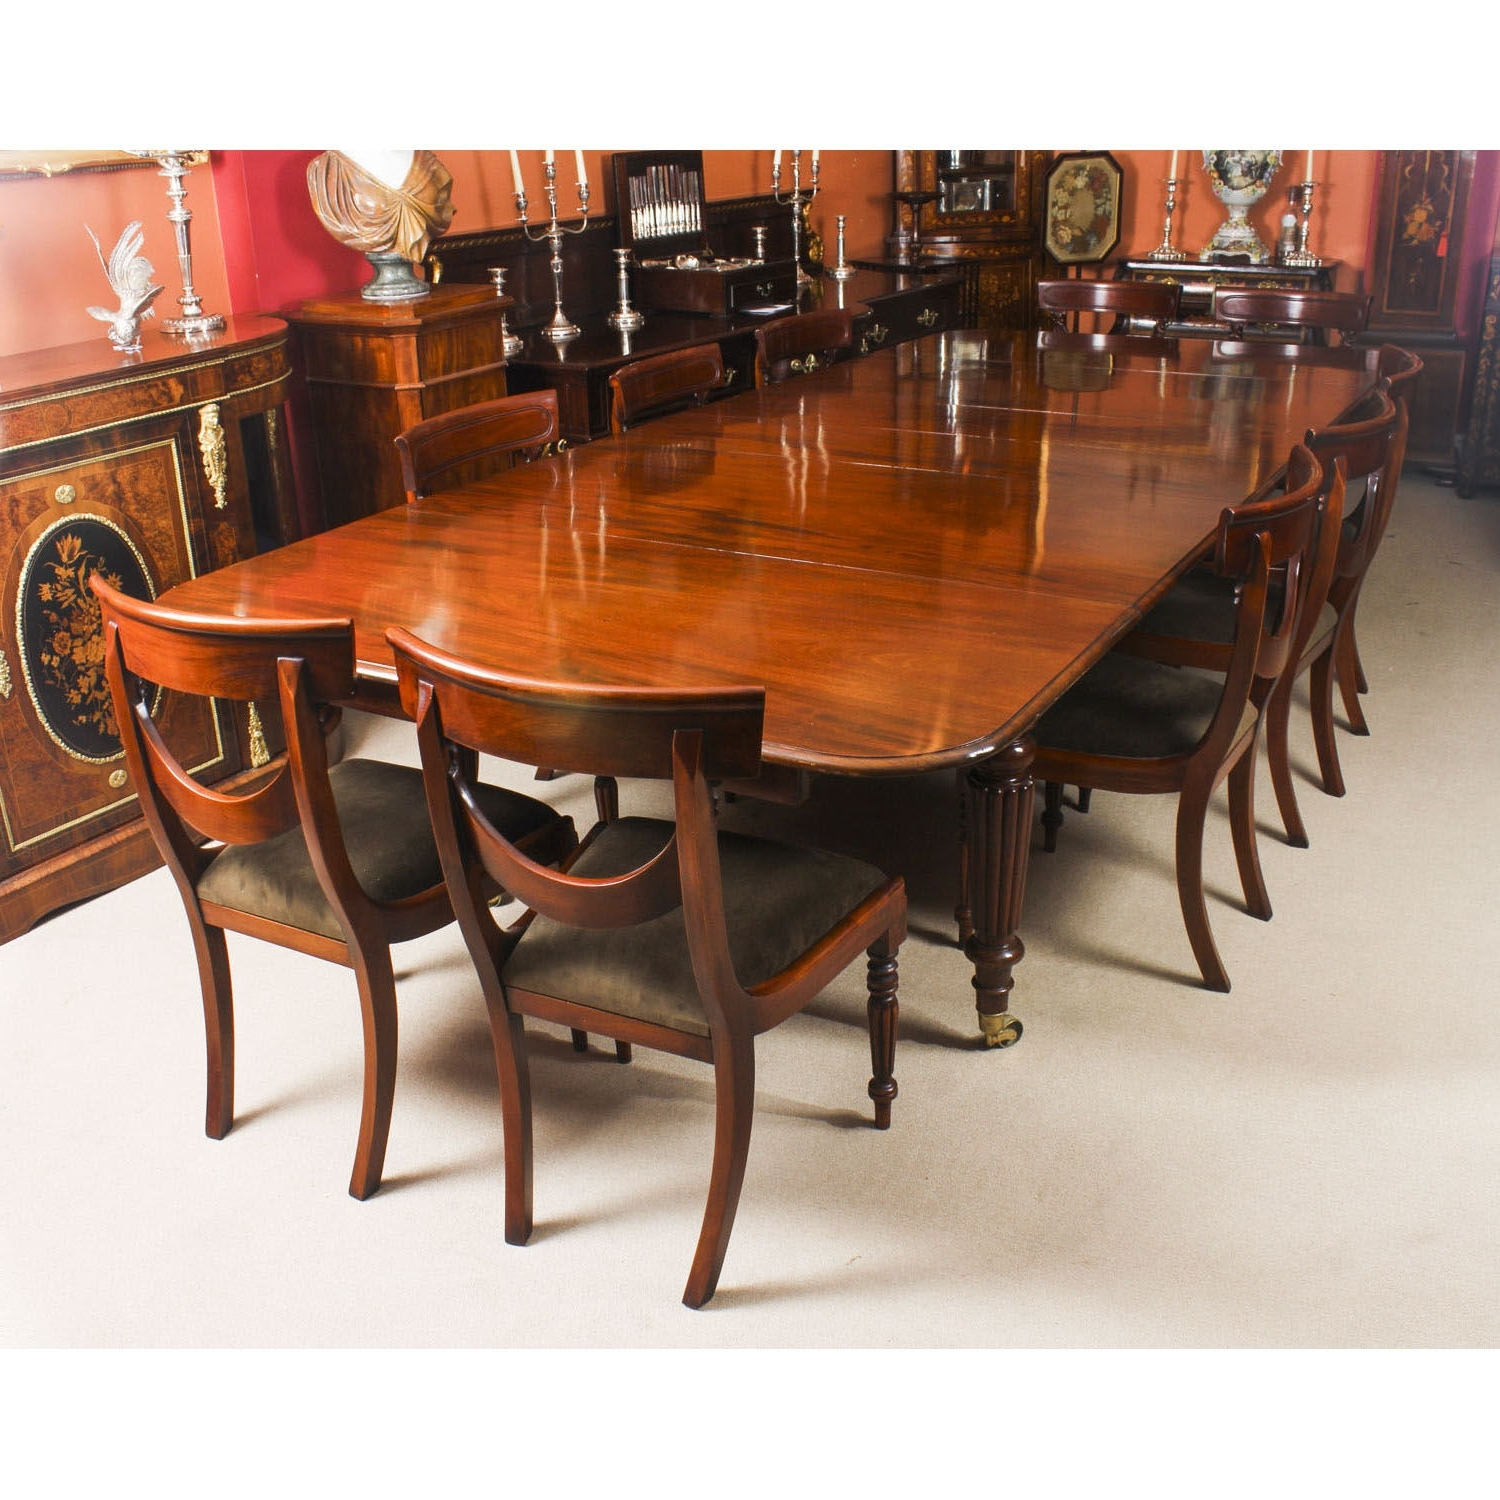 Newest Mahogany Extending Dining Tables And Chairs Inside Antique 11 Ft Flame Mahogany Extending Dining Table 19Th Century (View 18 of 25)